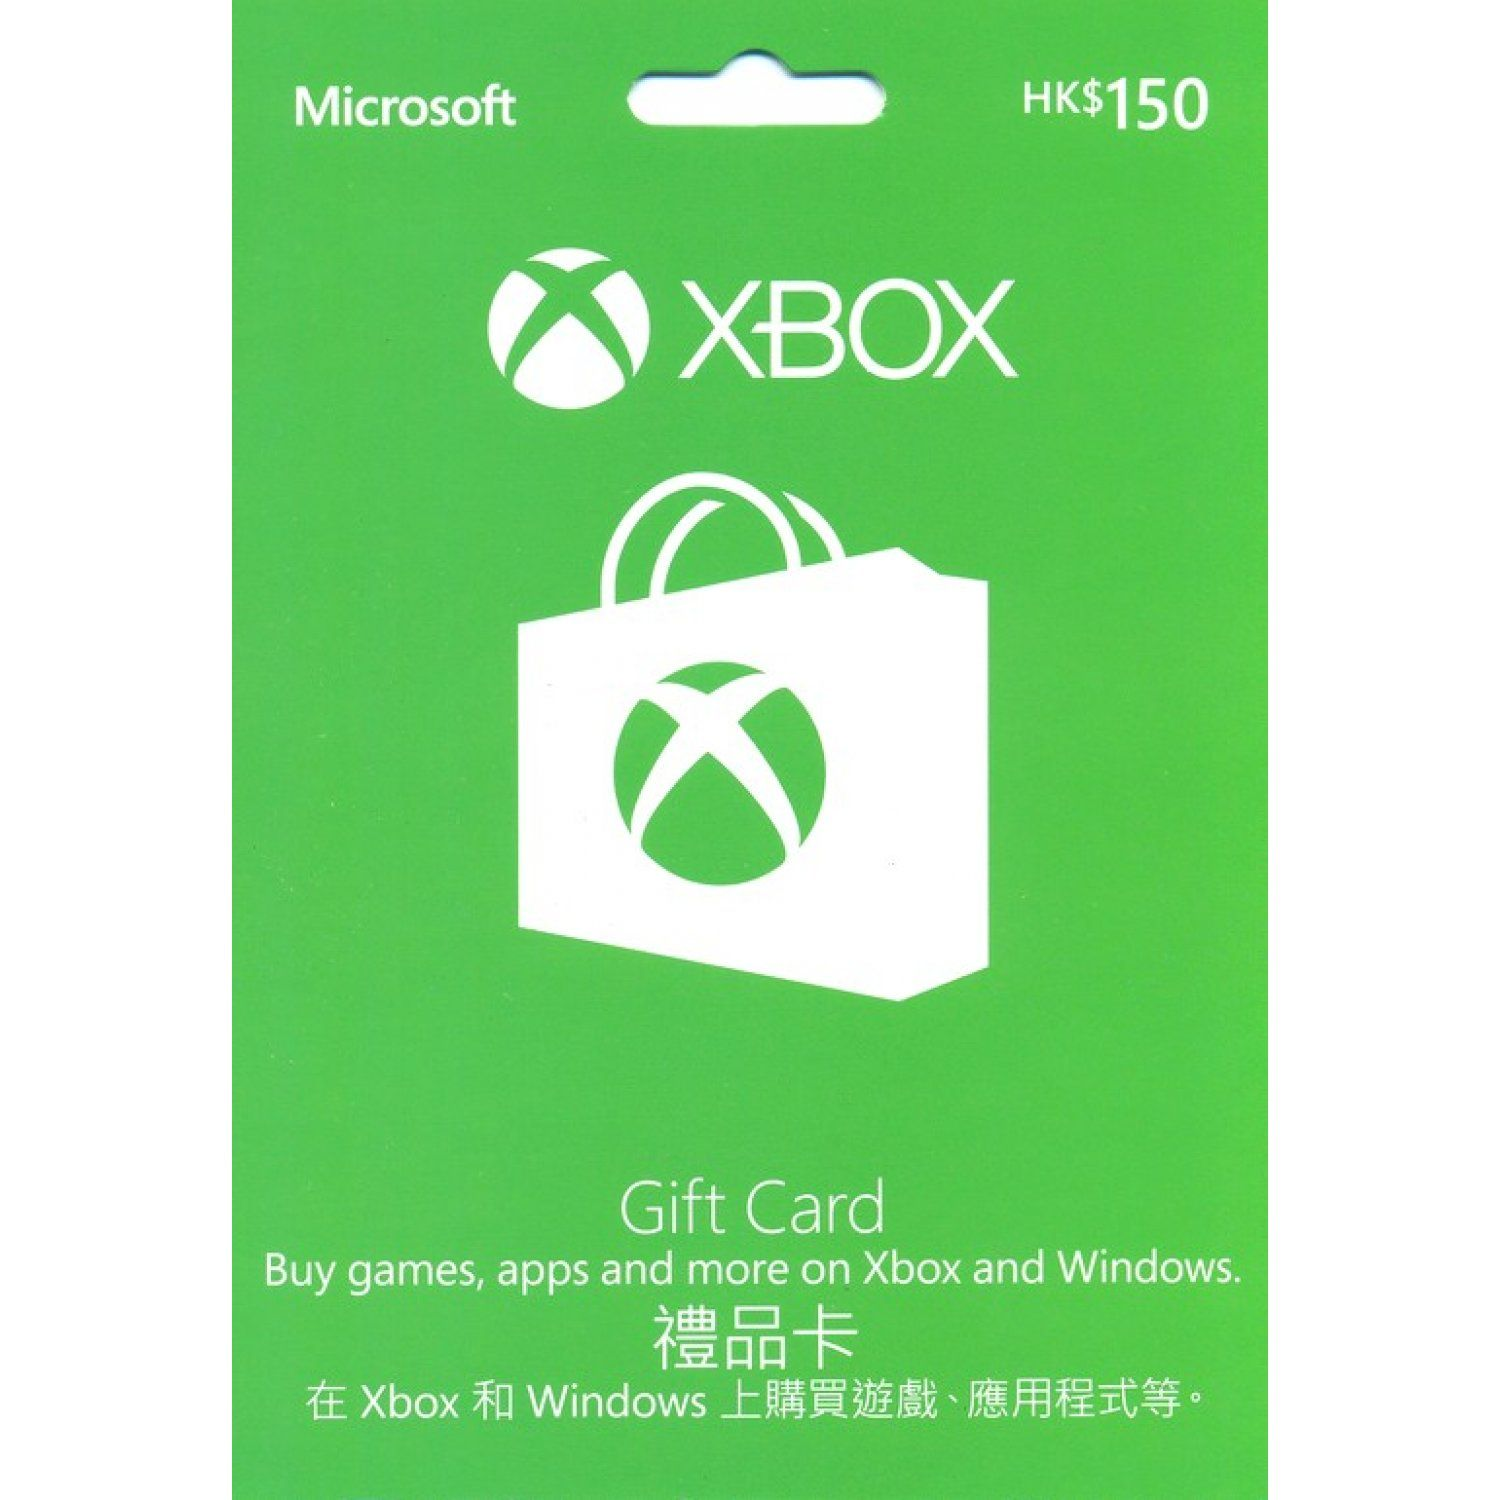 Xbox Gift Card HKD 150 digital (With images) Xbox gift